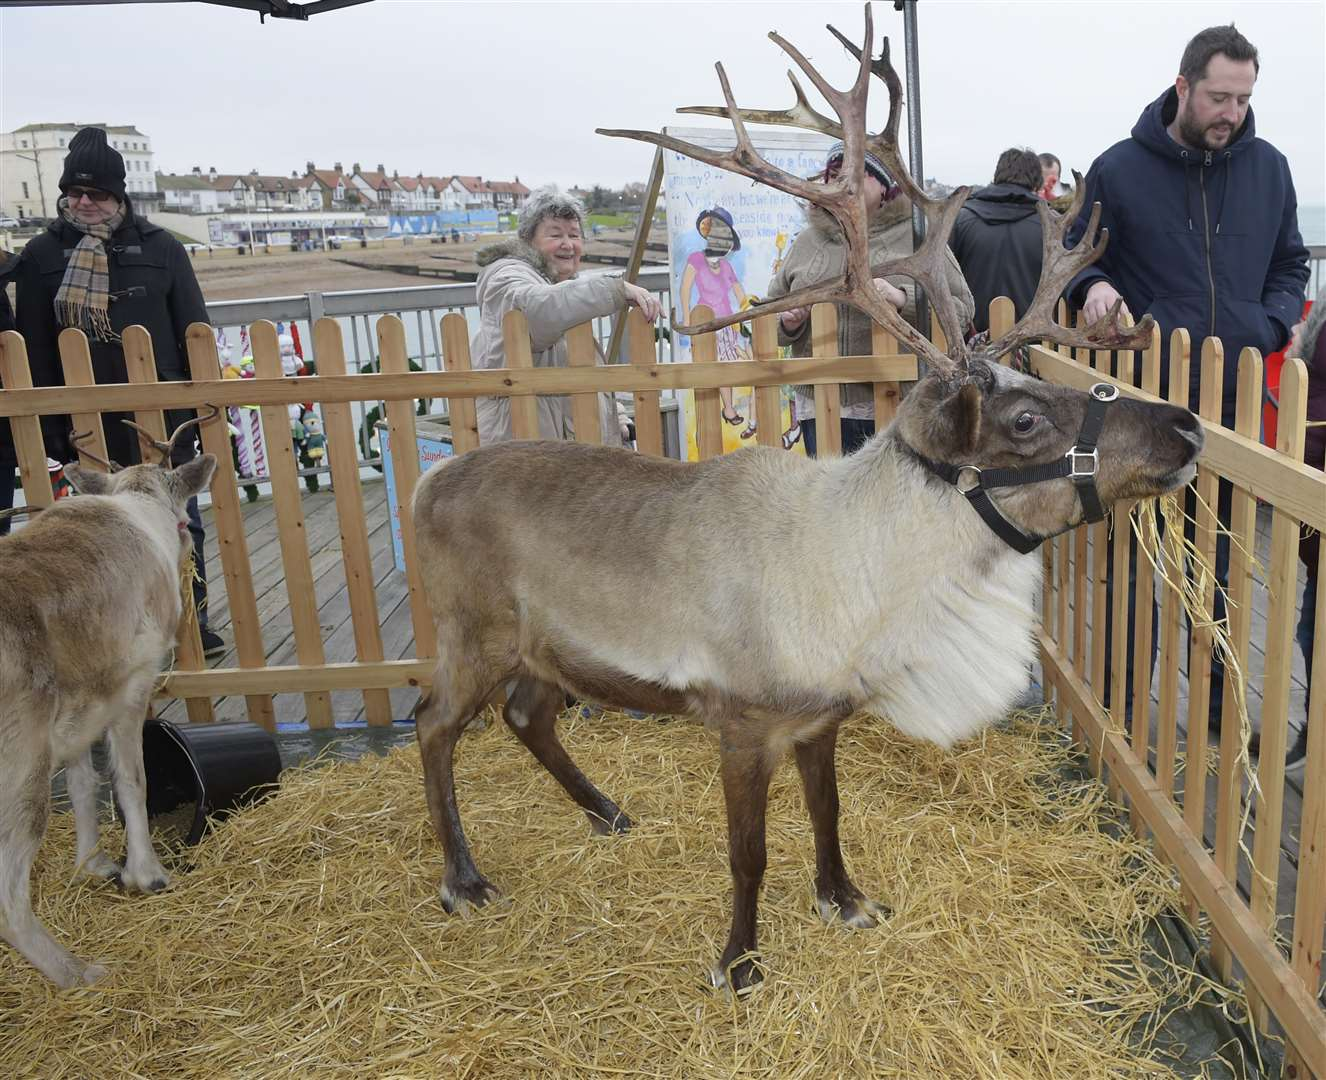 Reindeer at a previous event on Herne Bay pier